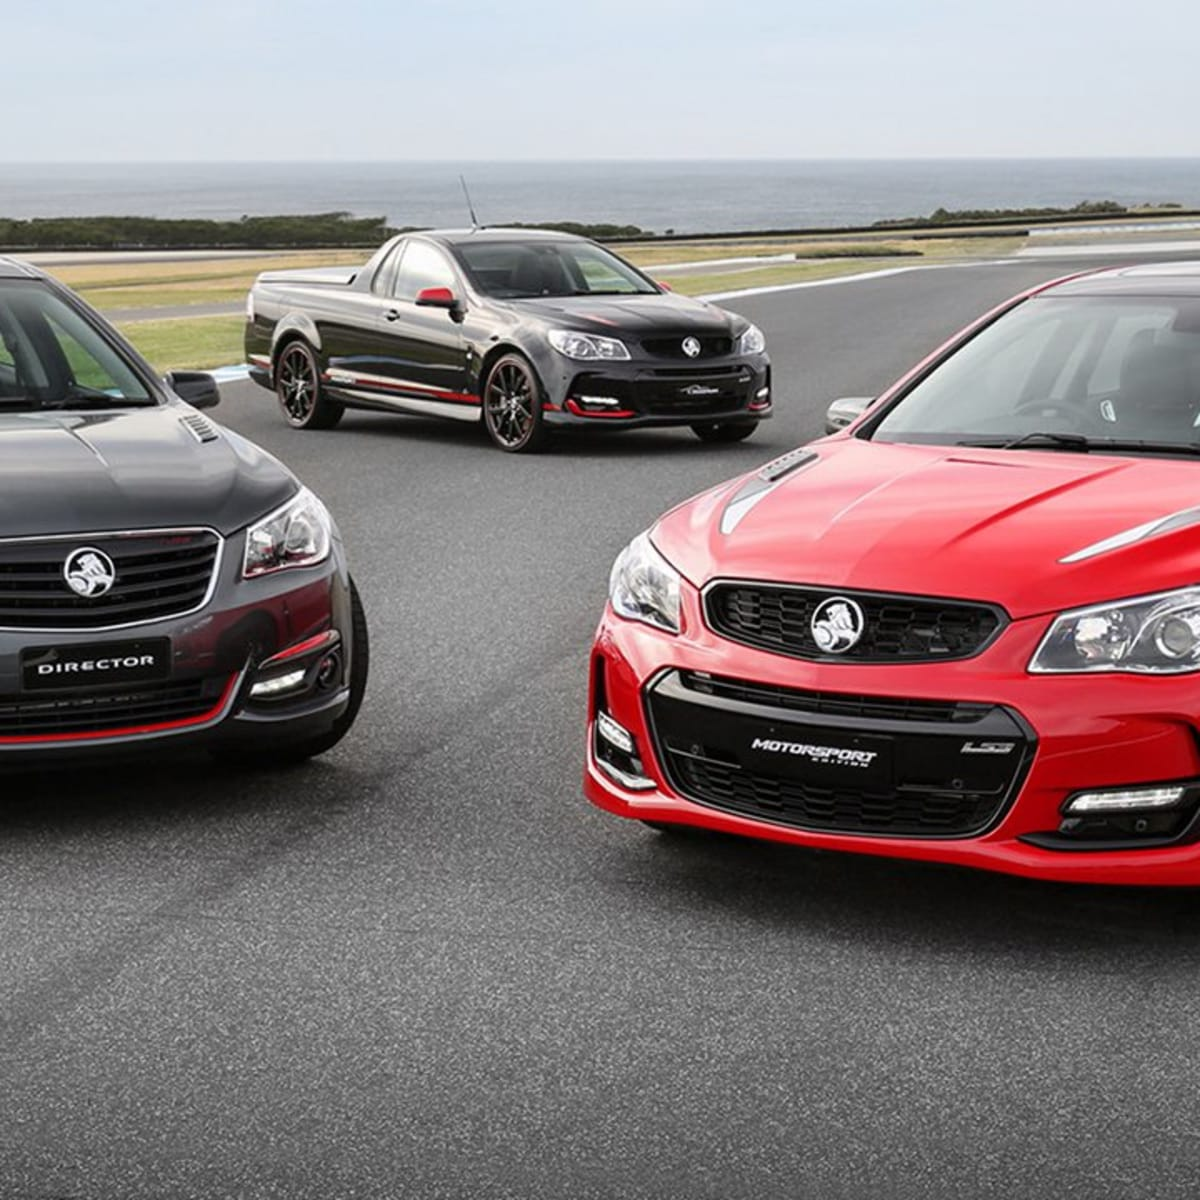 2017 Holden Commodore Motorsport, Magnum and Director review